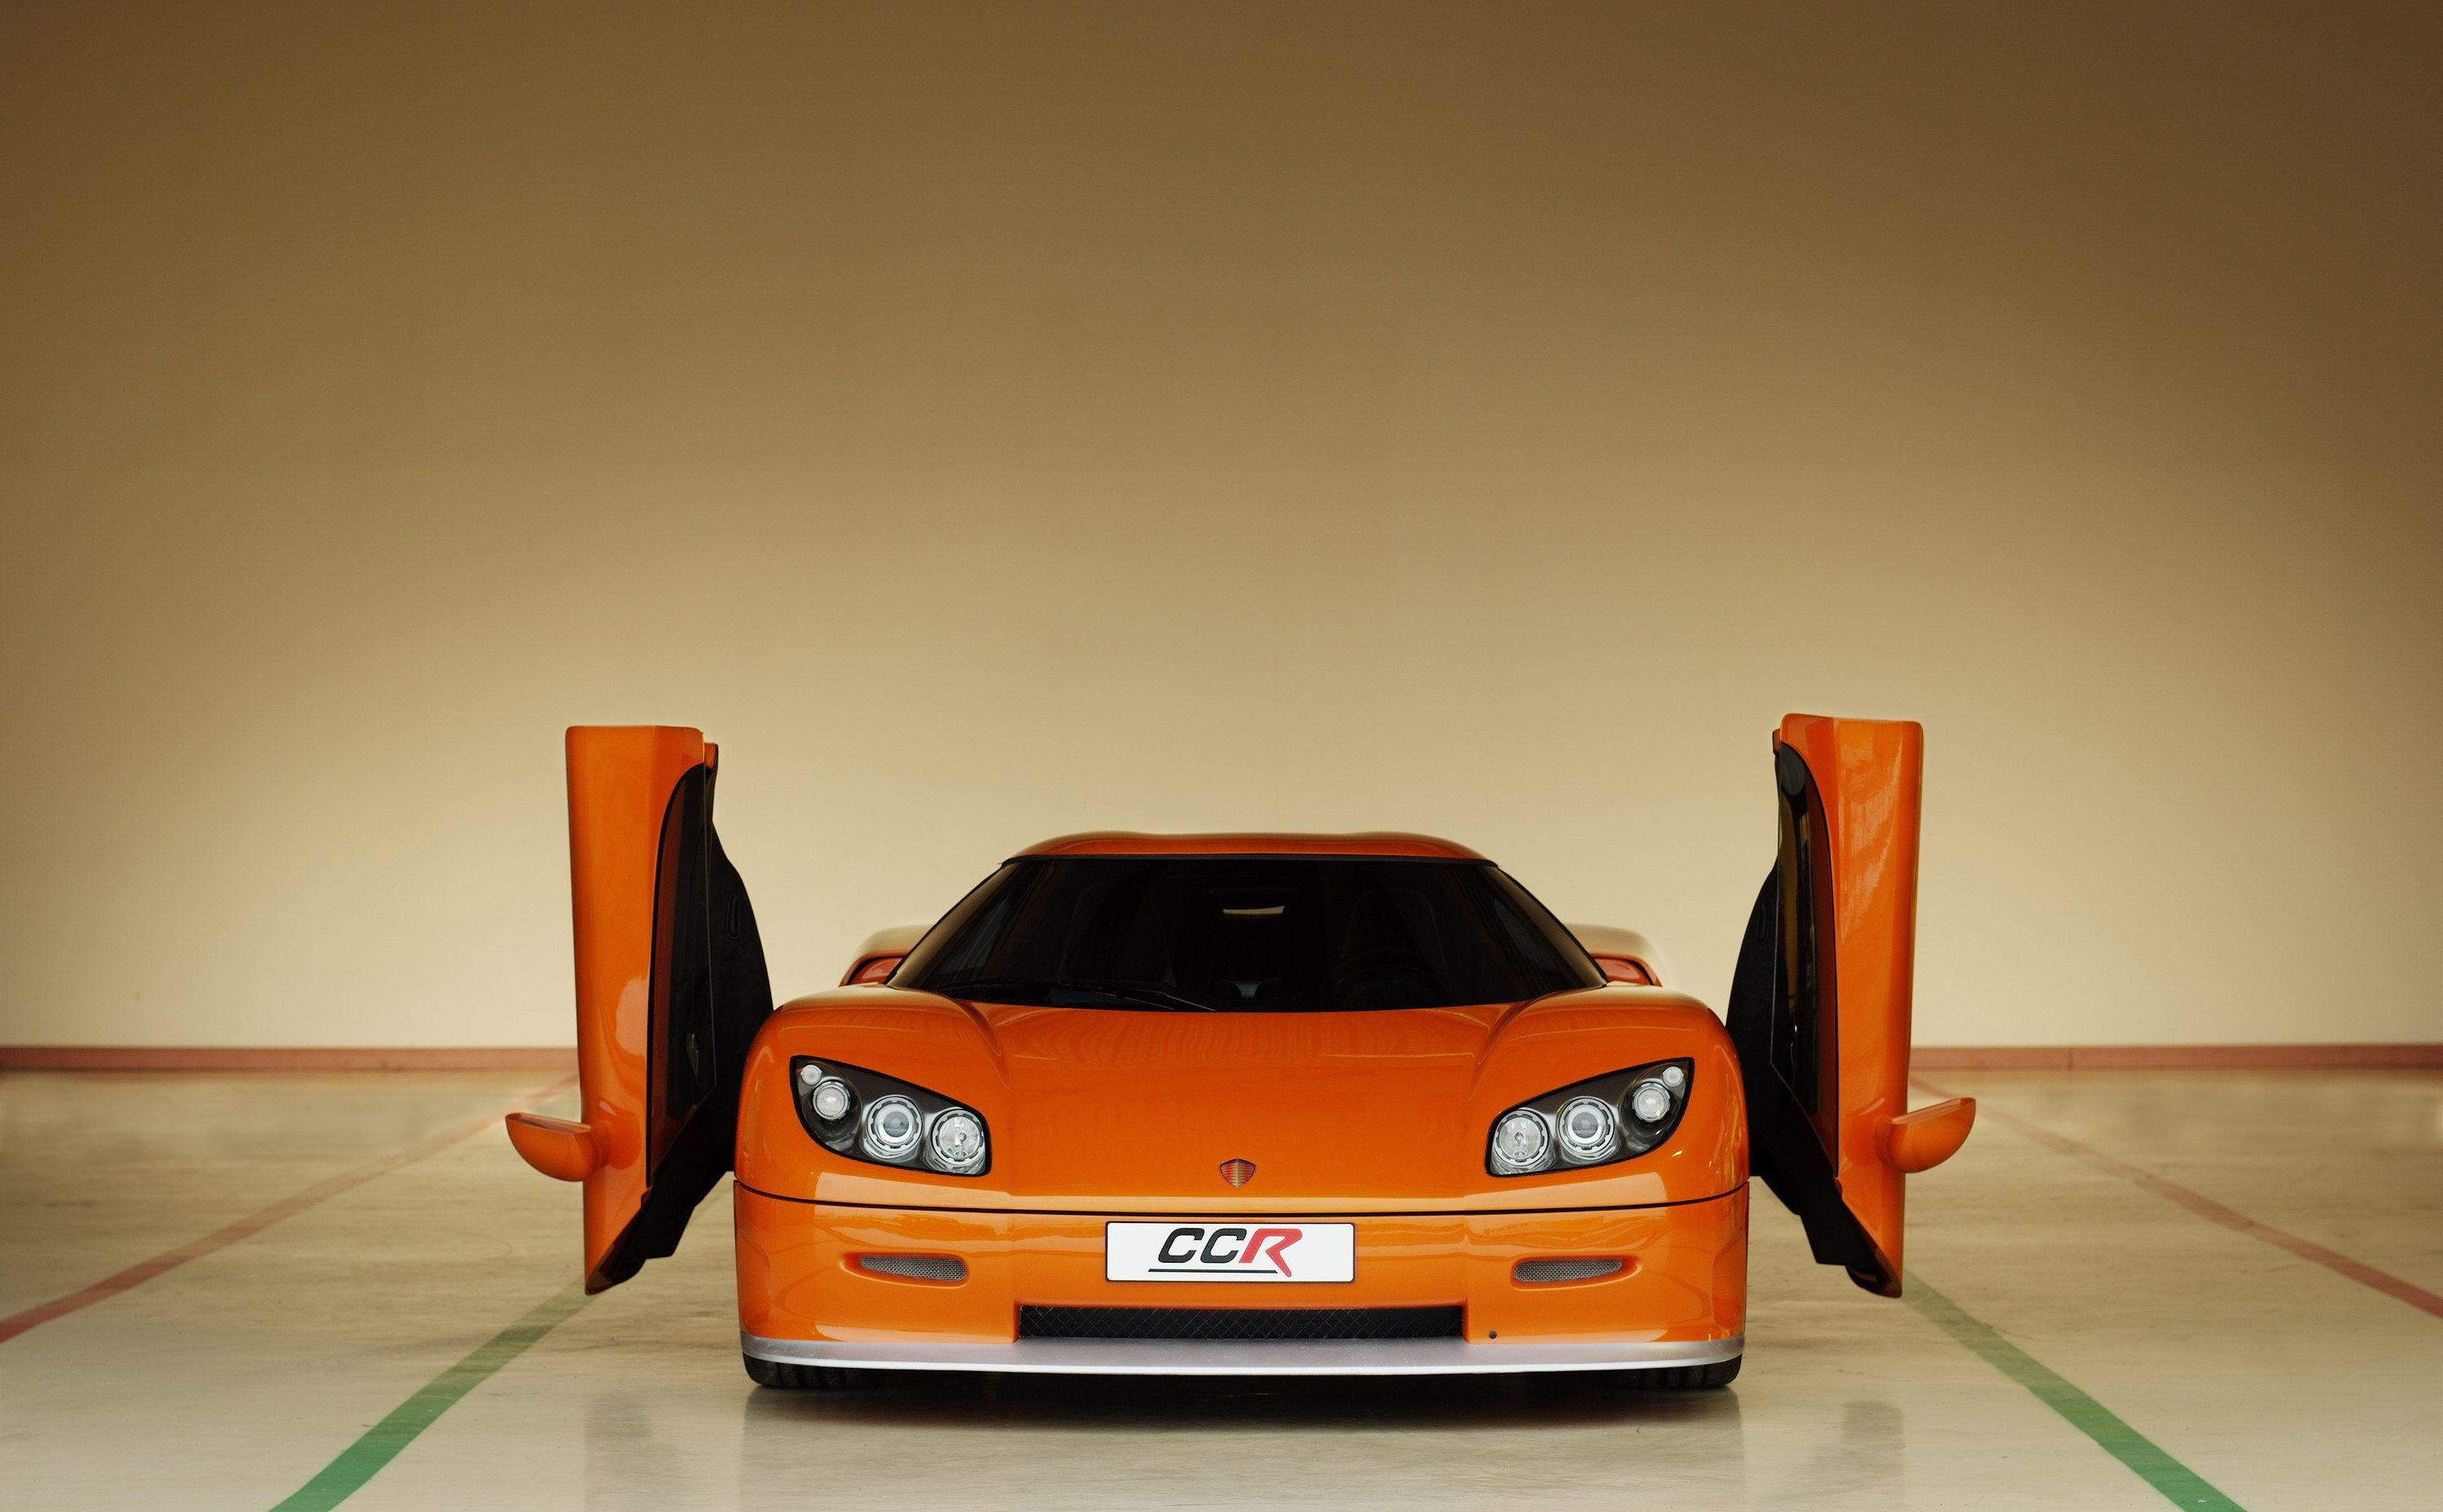 cars orange vehicles Koenigsegg